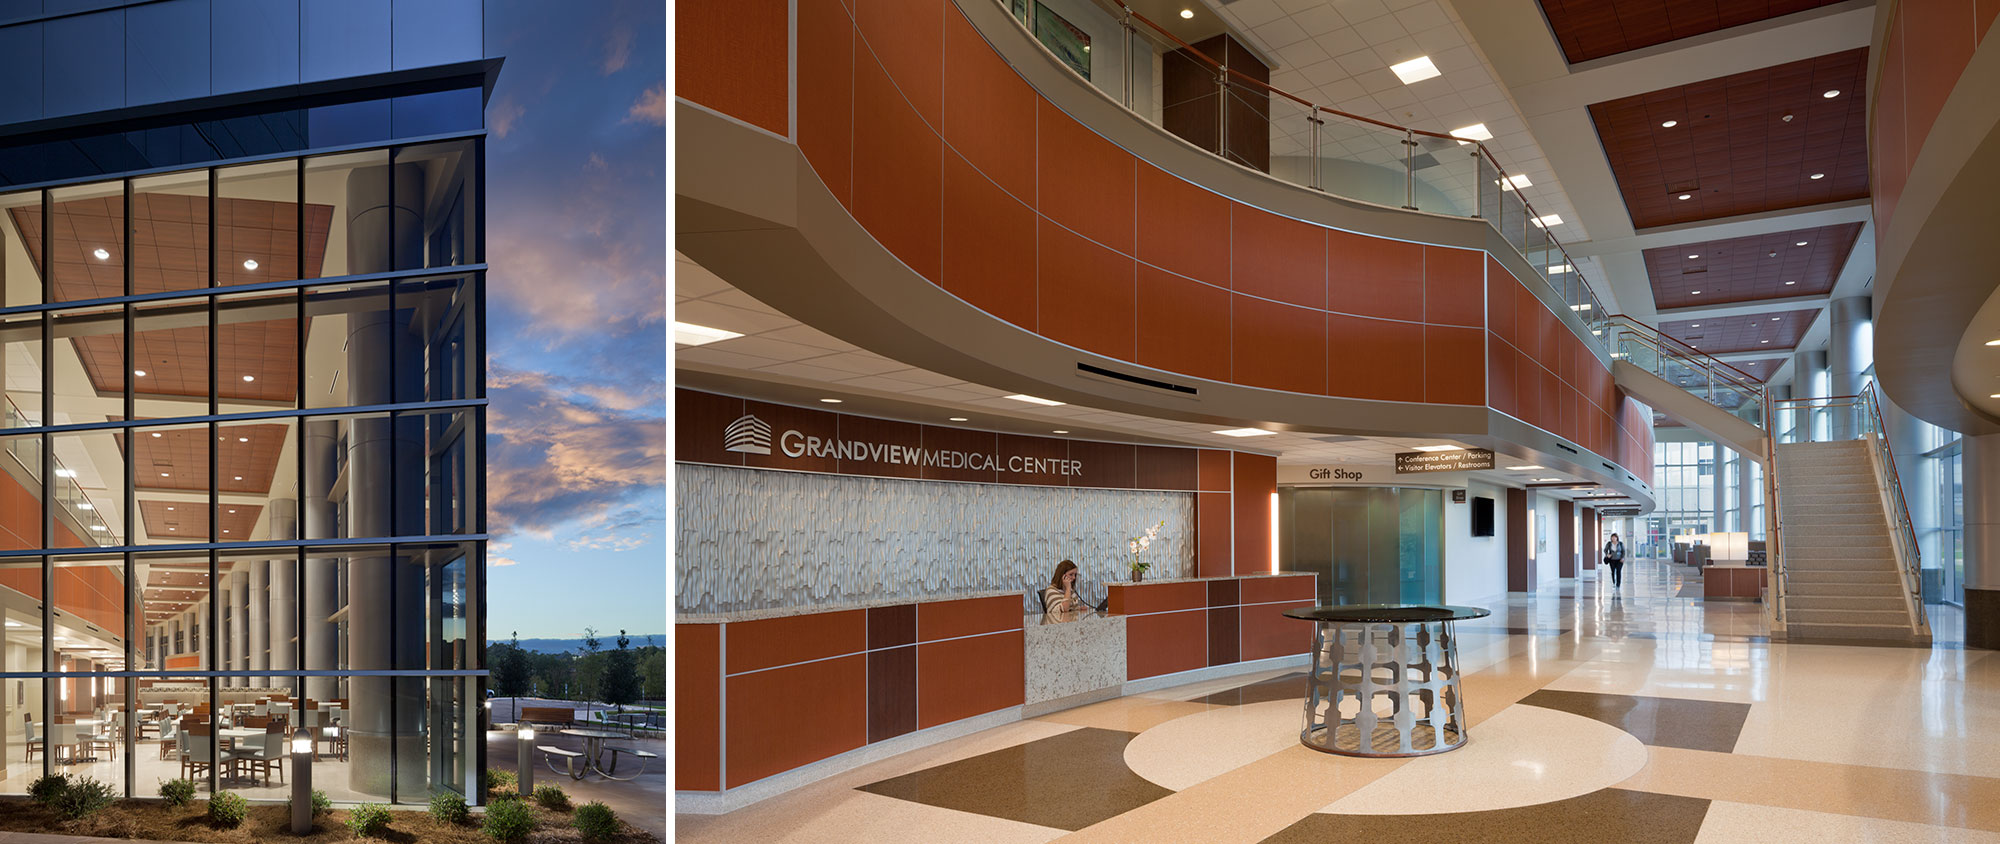 Grandview Medical Center